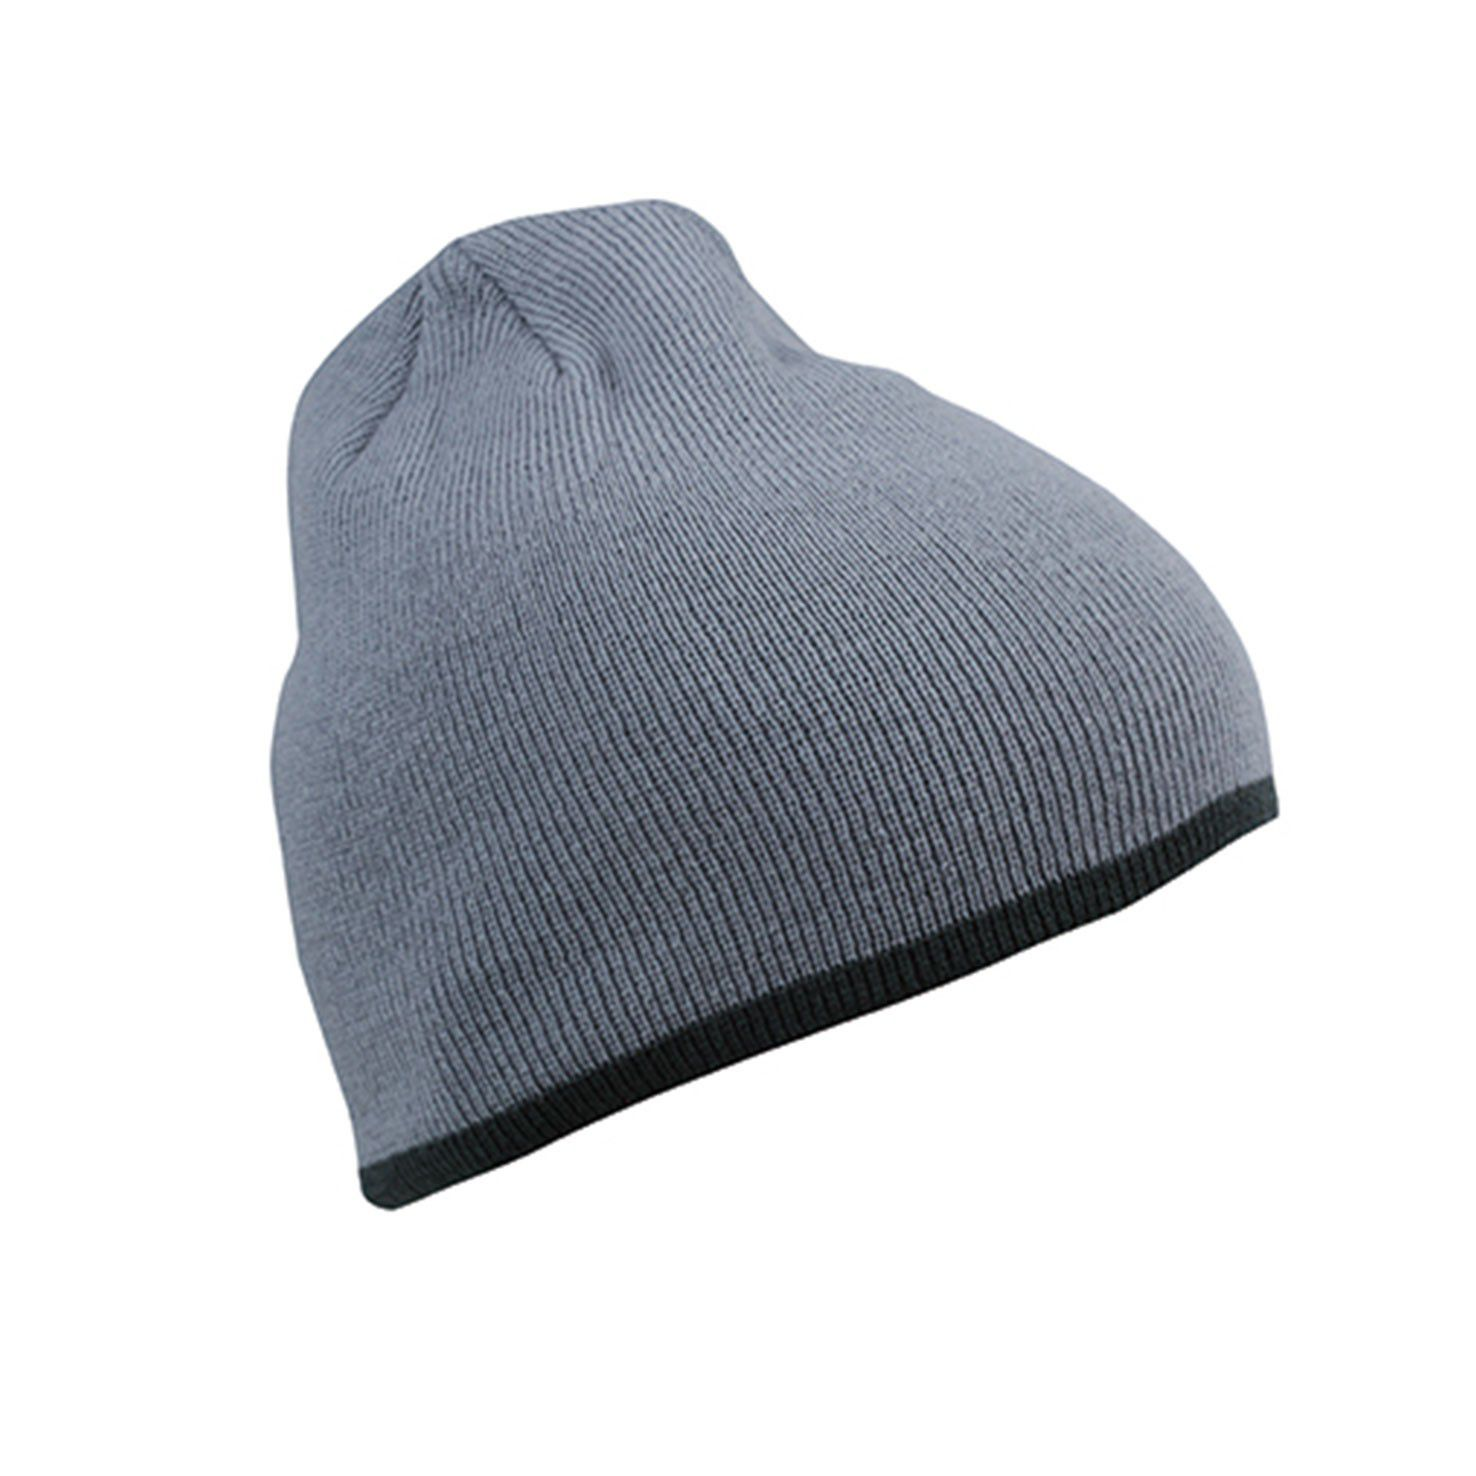 Donkergrijze Hippe beanie